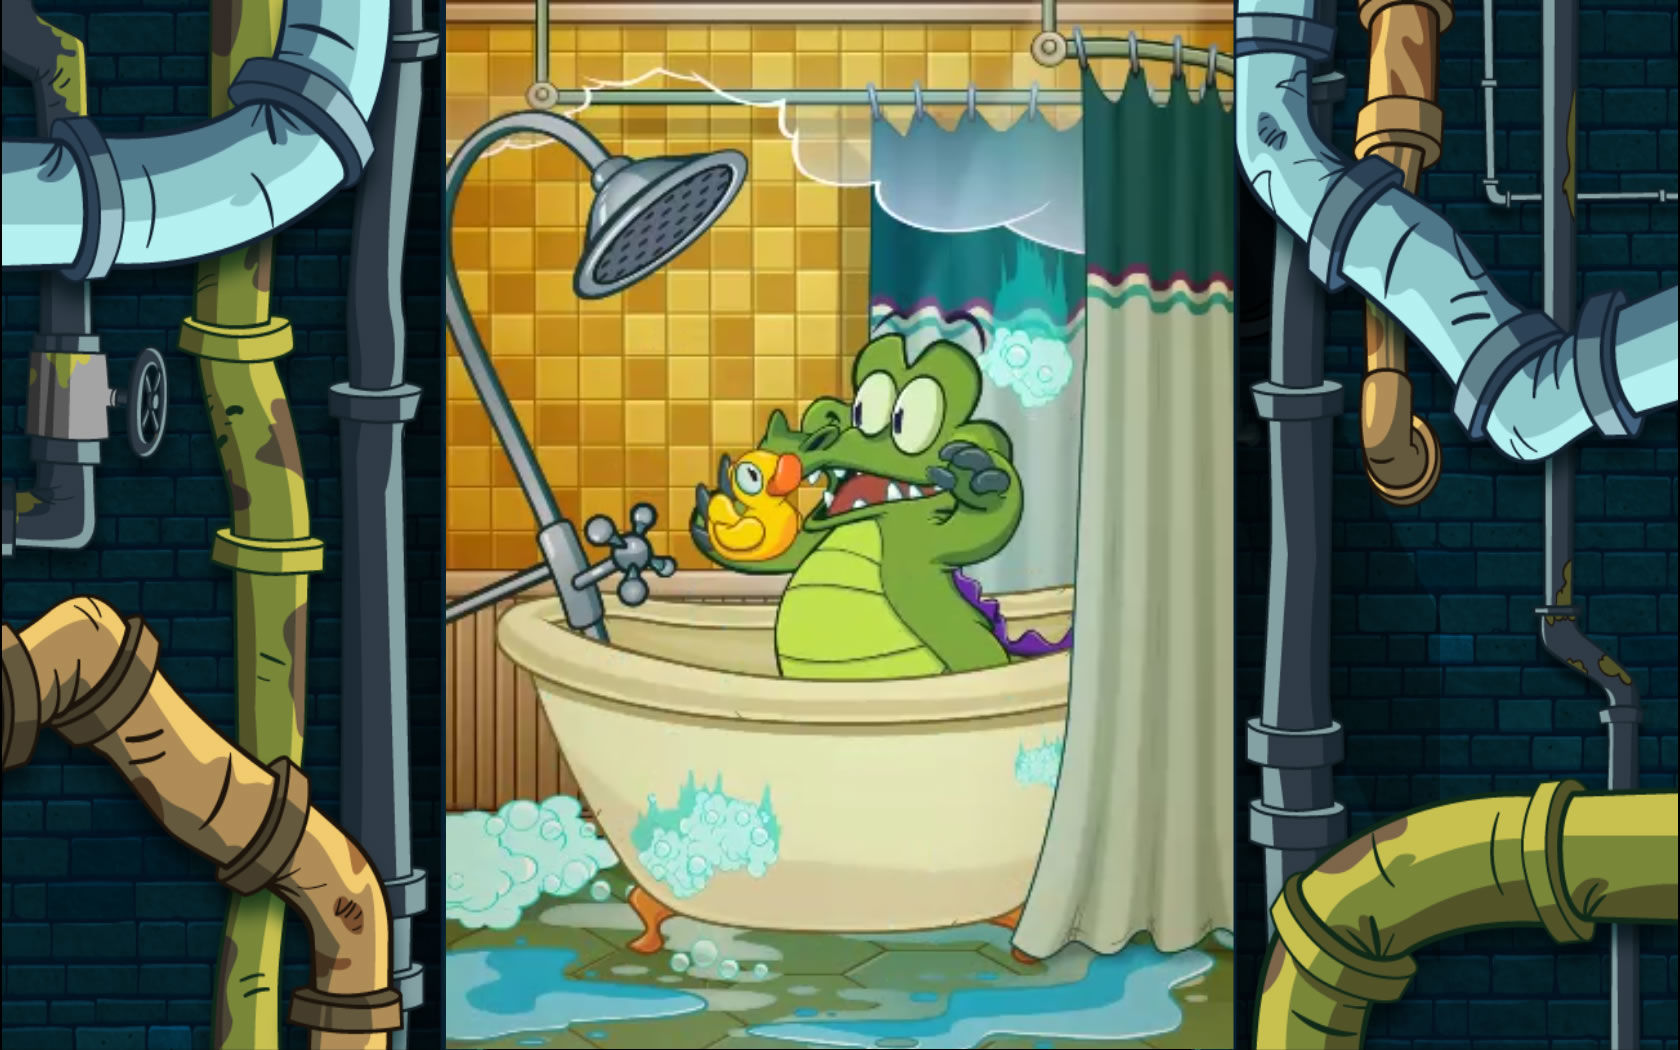 Swampy returns in an introduction sequence. He needs lots of water to shower.